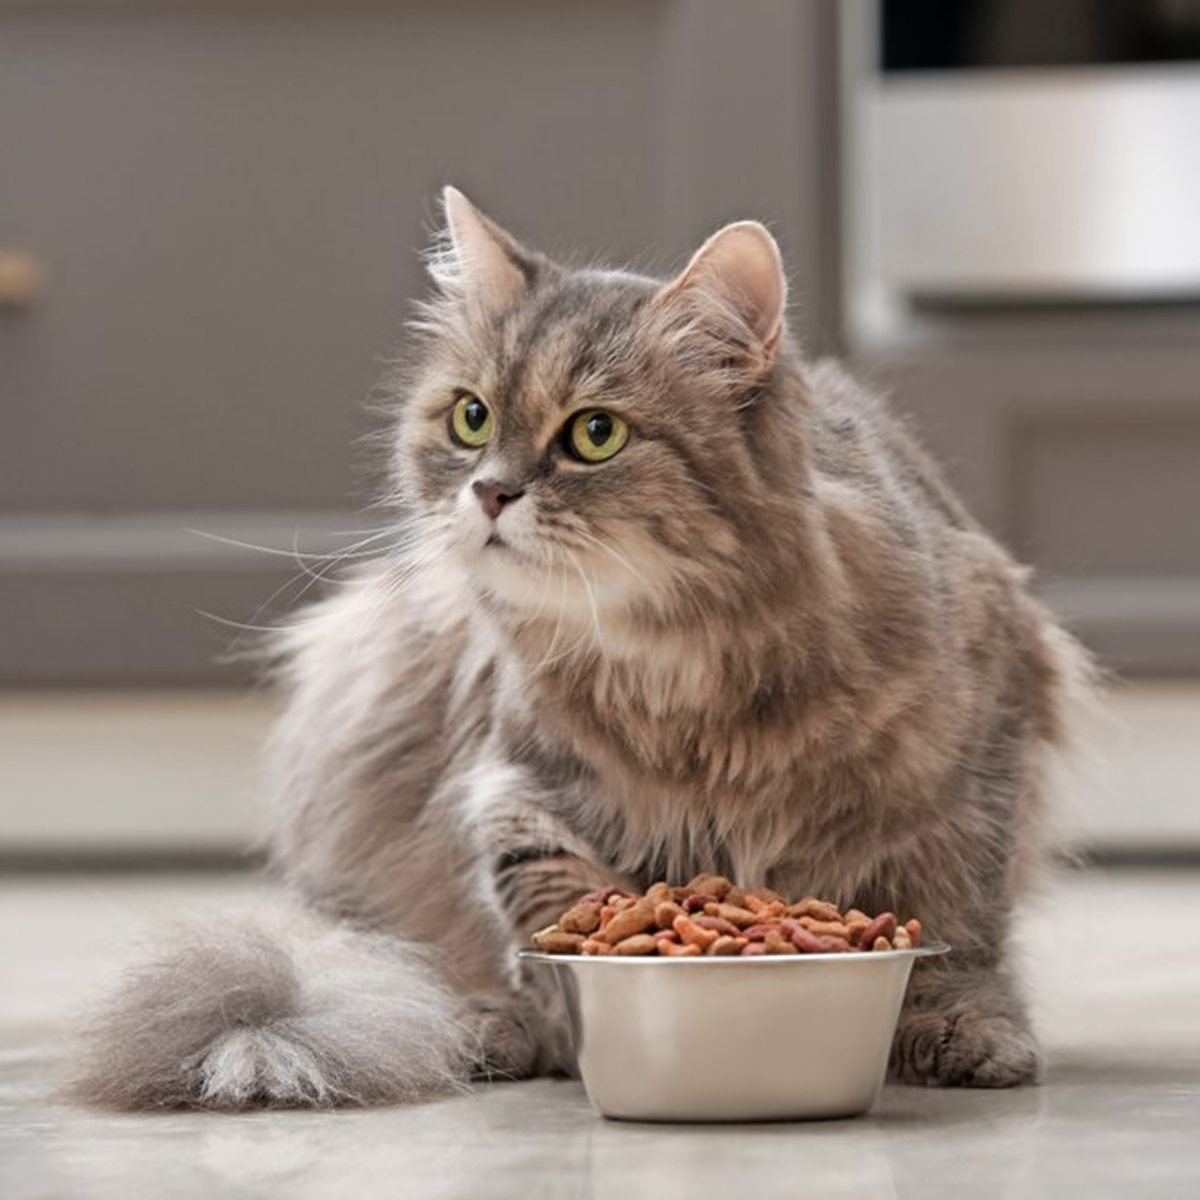 Long haired cat sitting behind a full food bowl